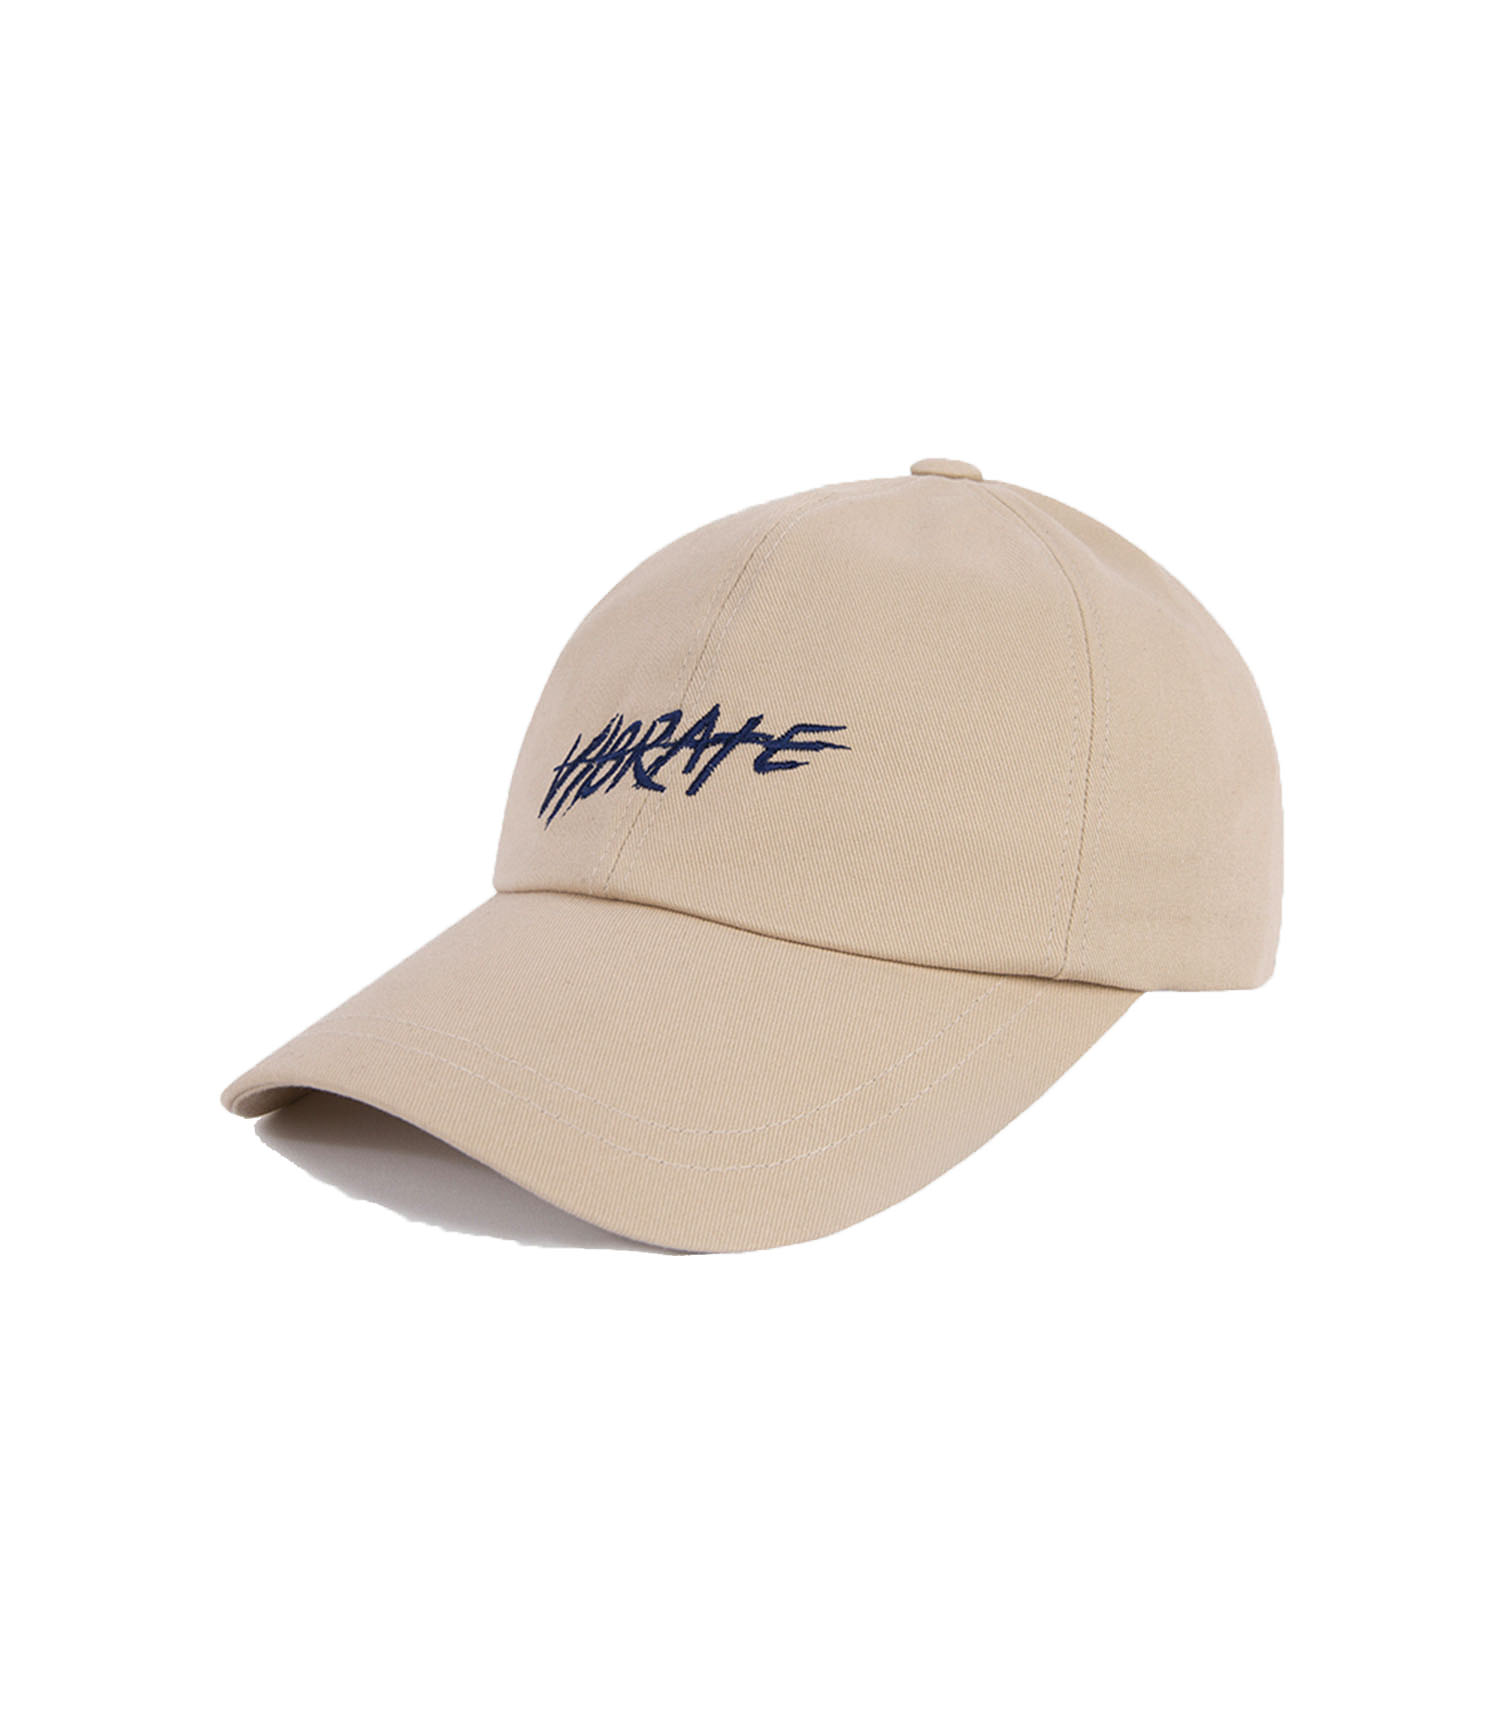 VIBRATE - BRUSH LETTERING BALL CAP (beige)